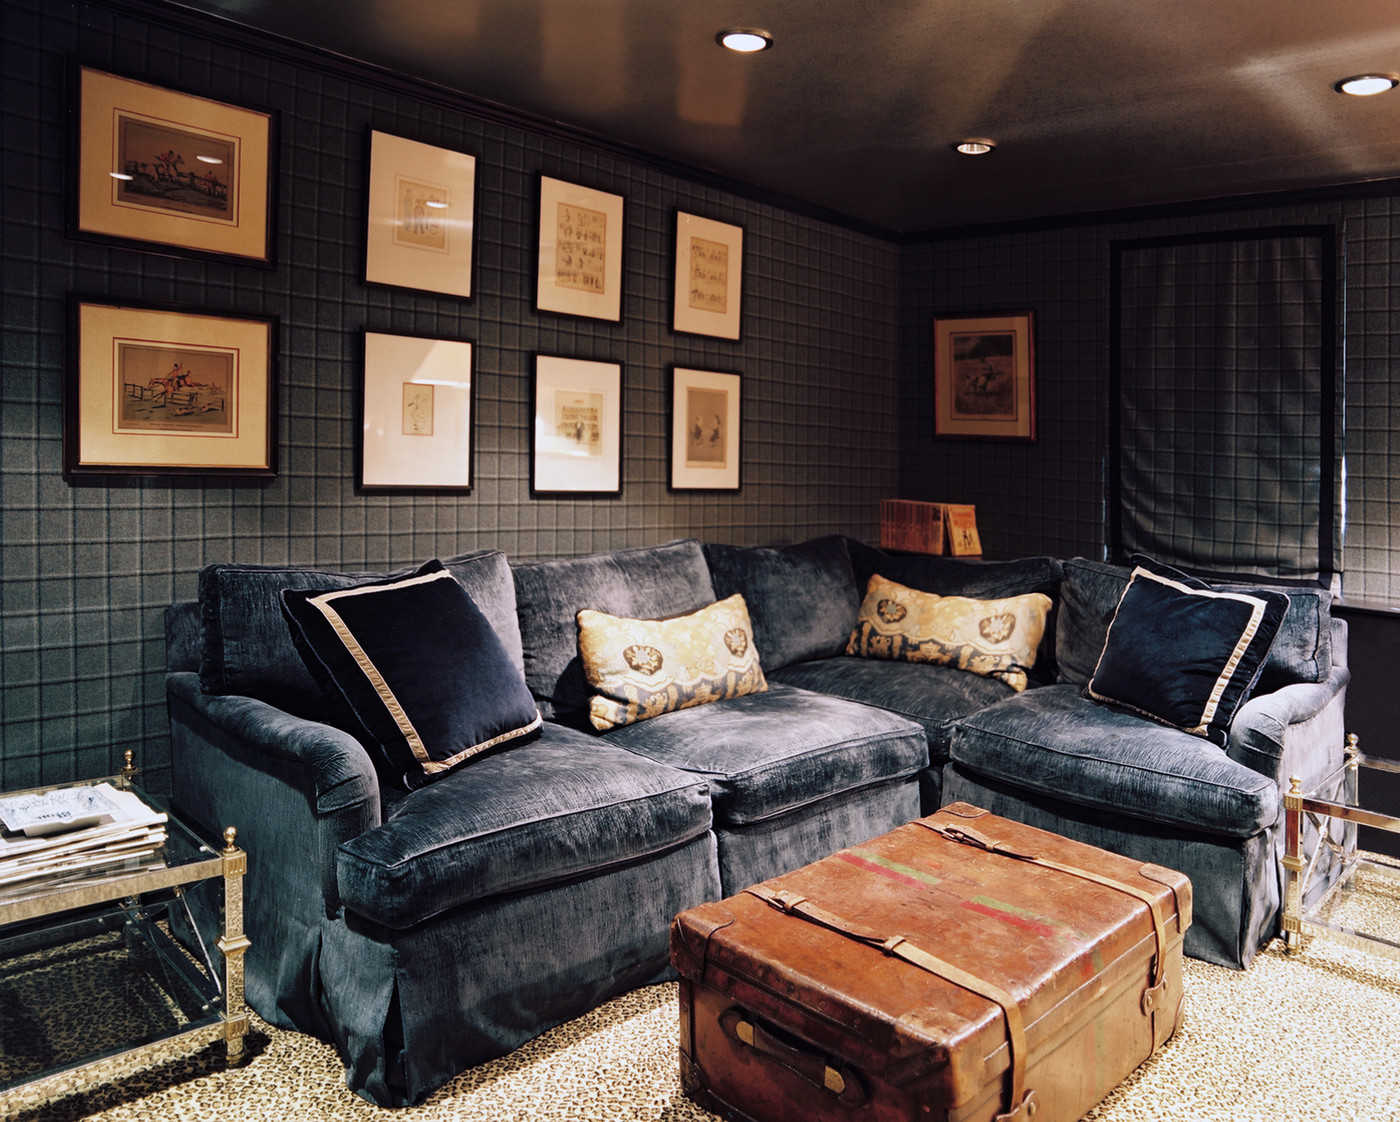 Leather Trunk Photos, Design, Ideas, Remodel, and Decor - Lonny